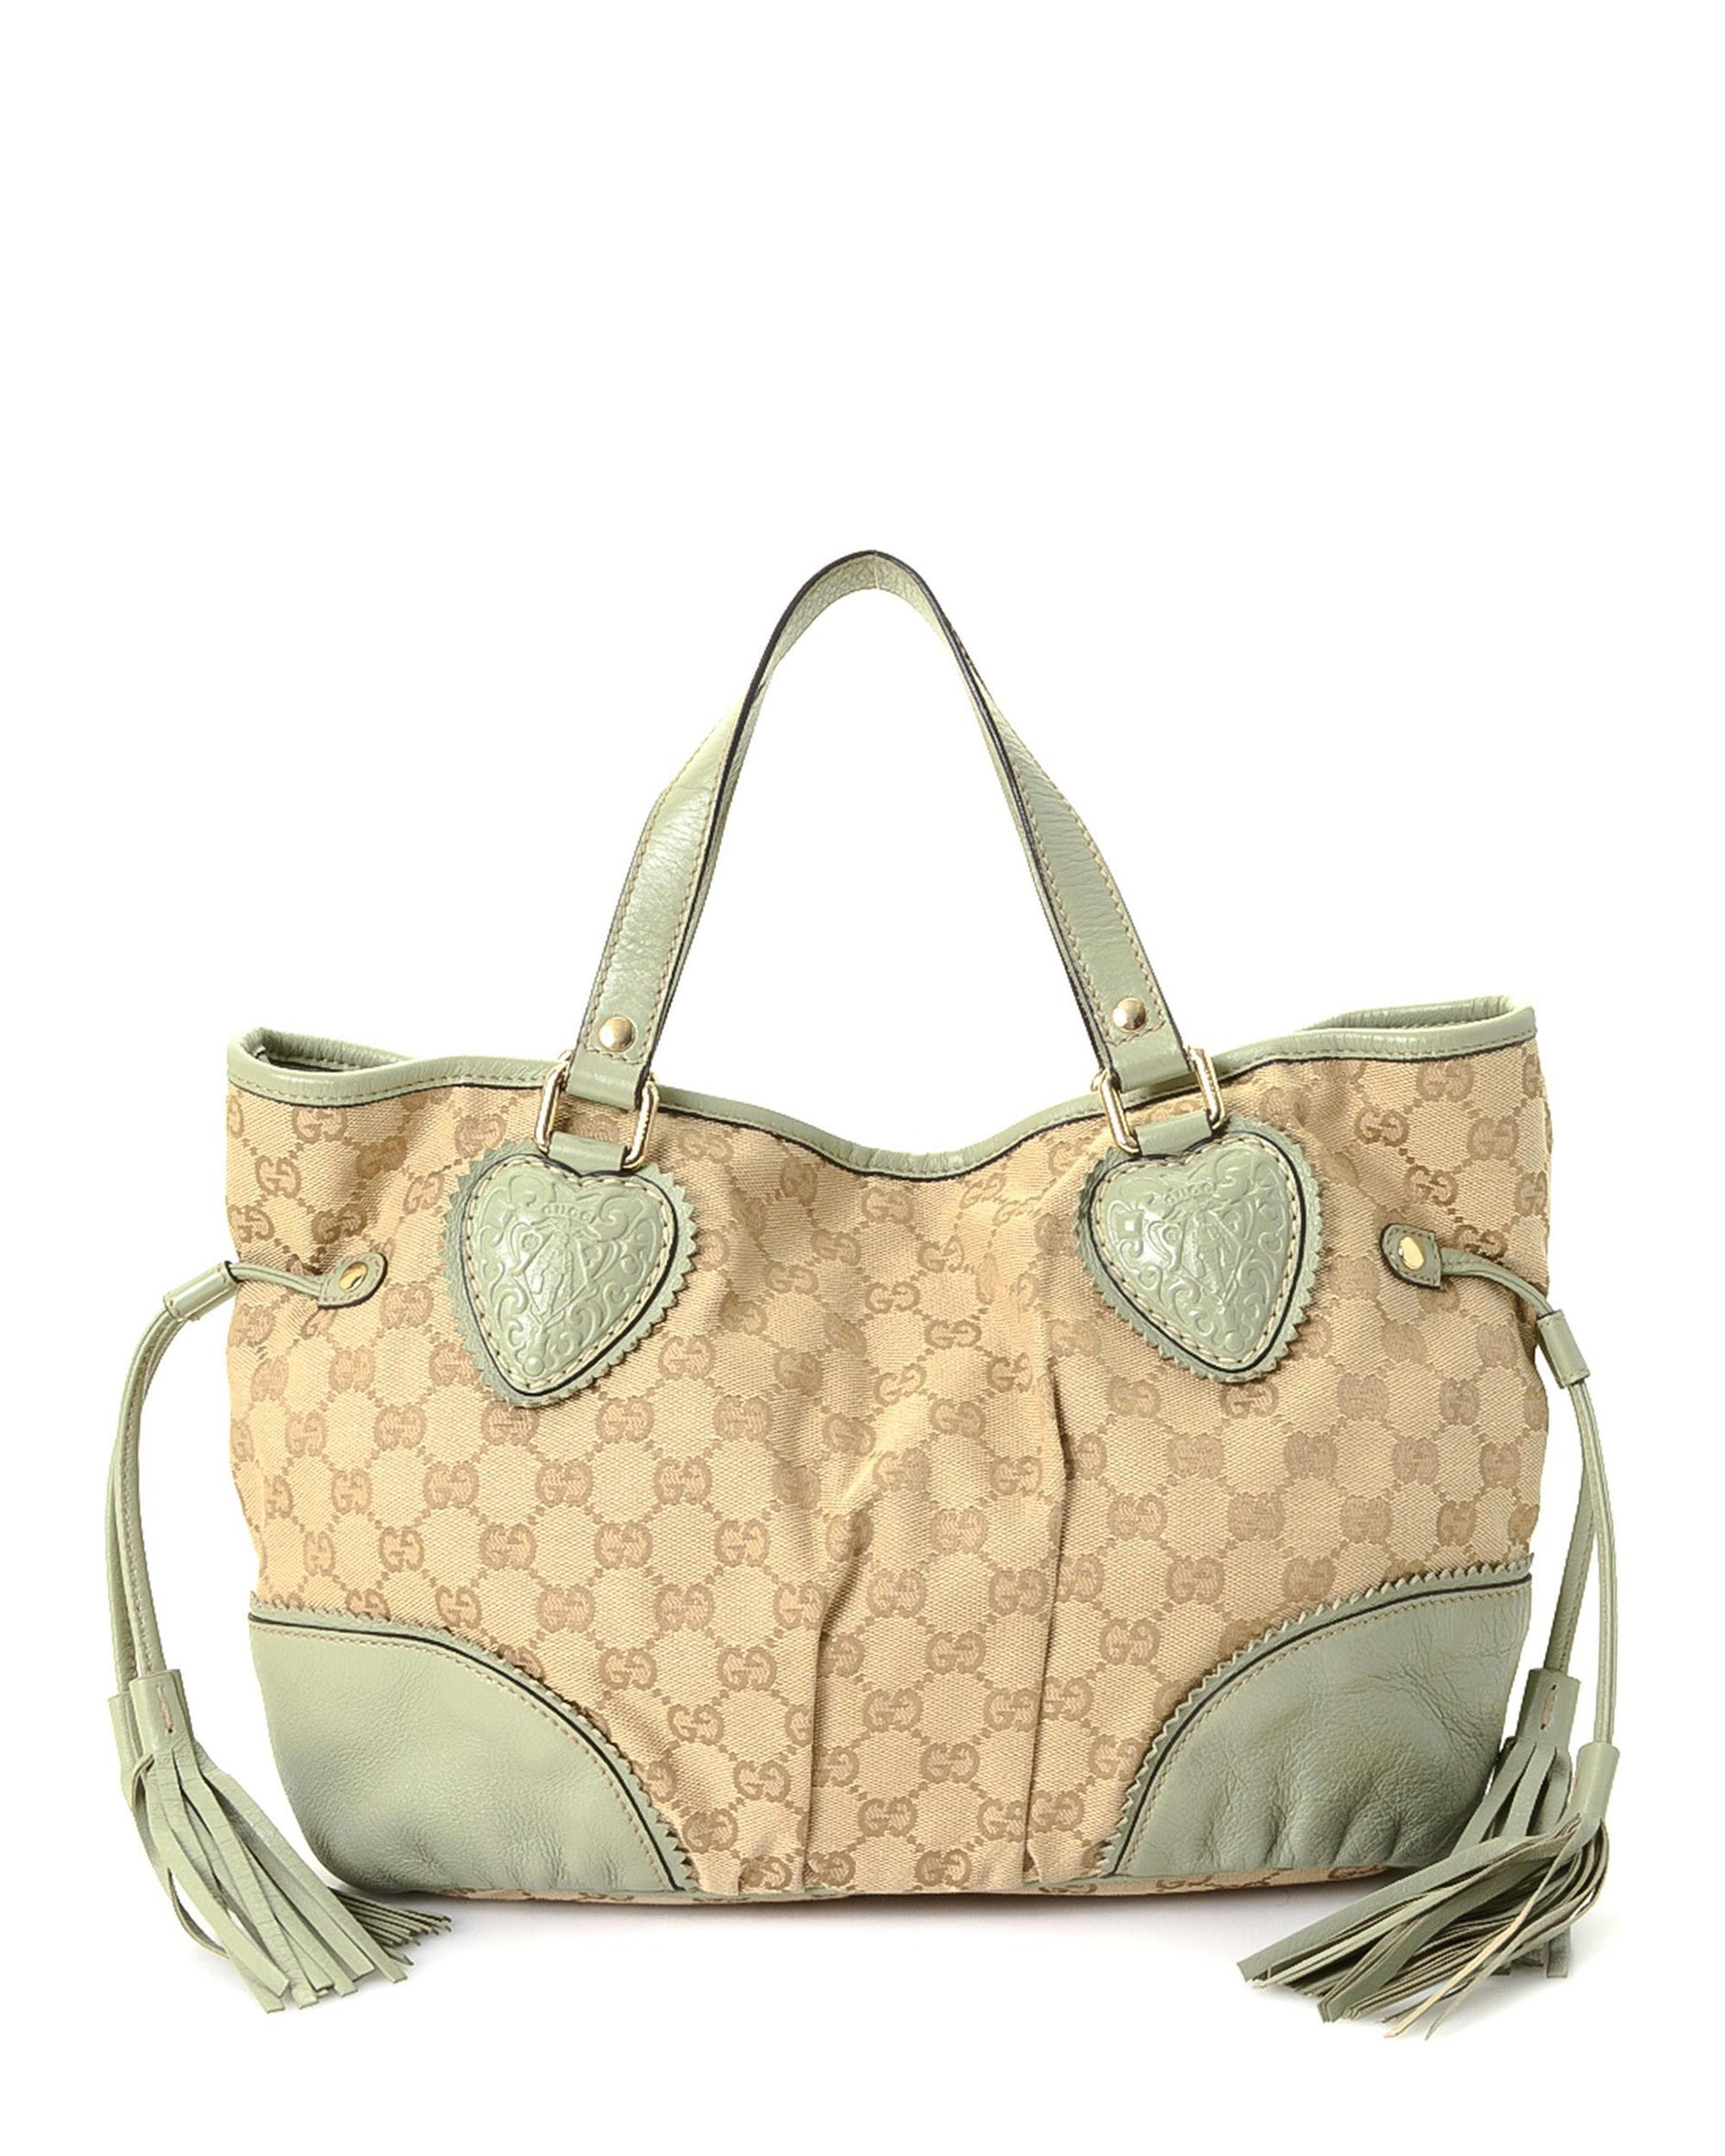 fe2f76fb505d Gucci Babouska Crest Tote - Vintage in Natural - Lyst